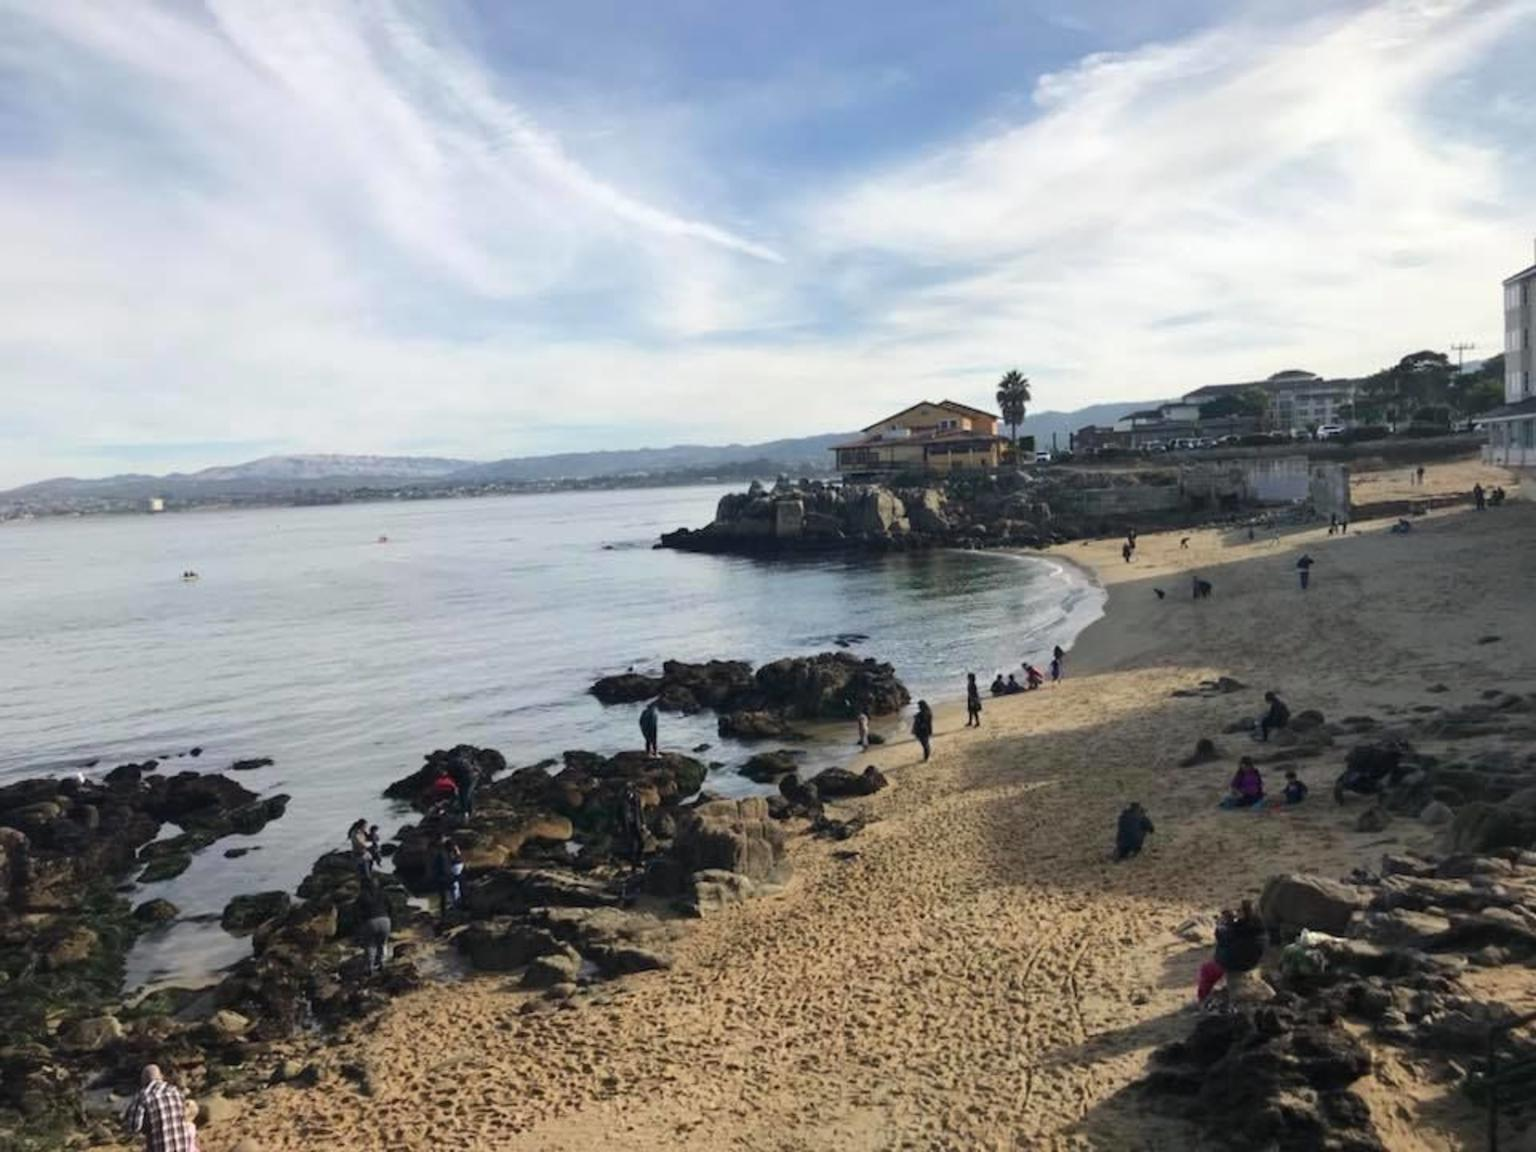 MÁS FOTOS, Monterey, Carmel and 17-Mile Drive - Full Day Tour from San Francisco